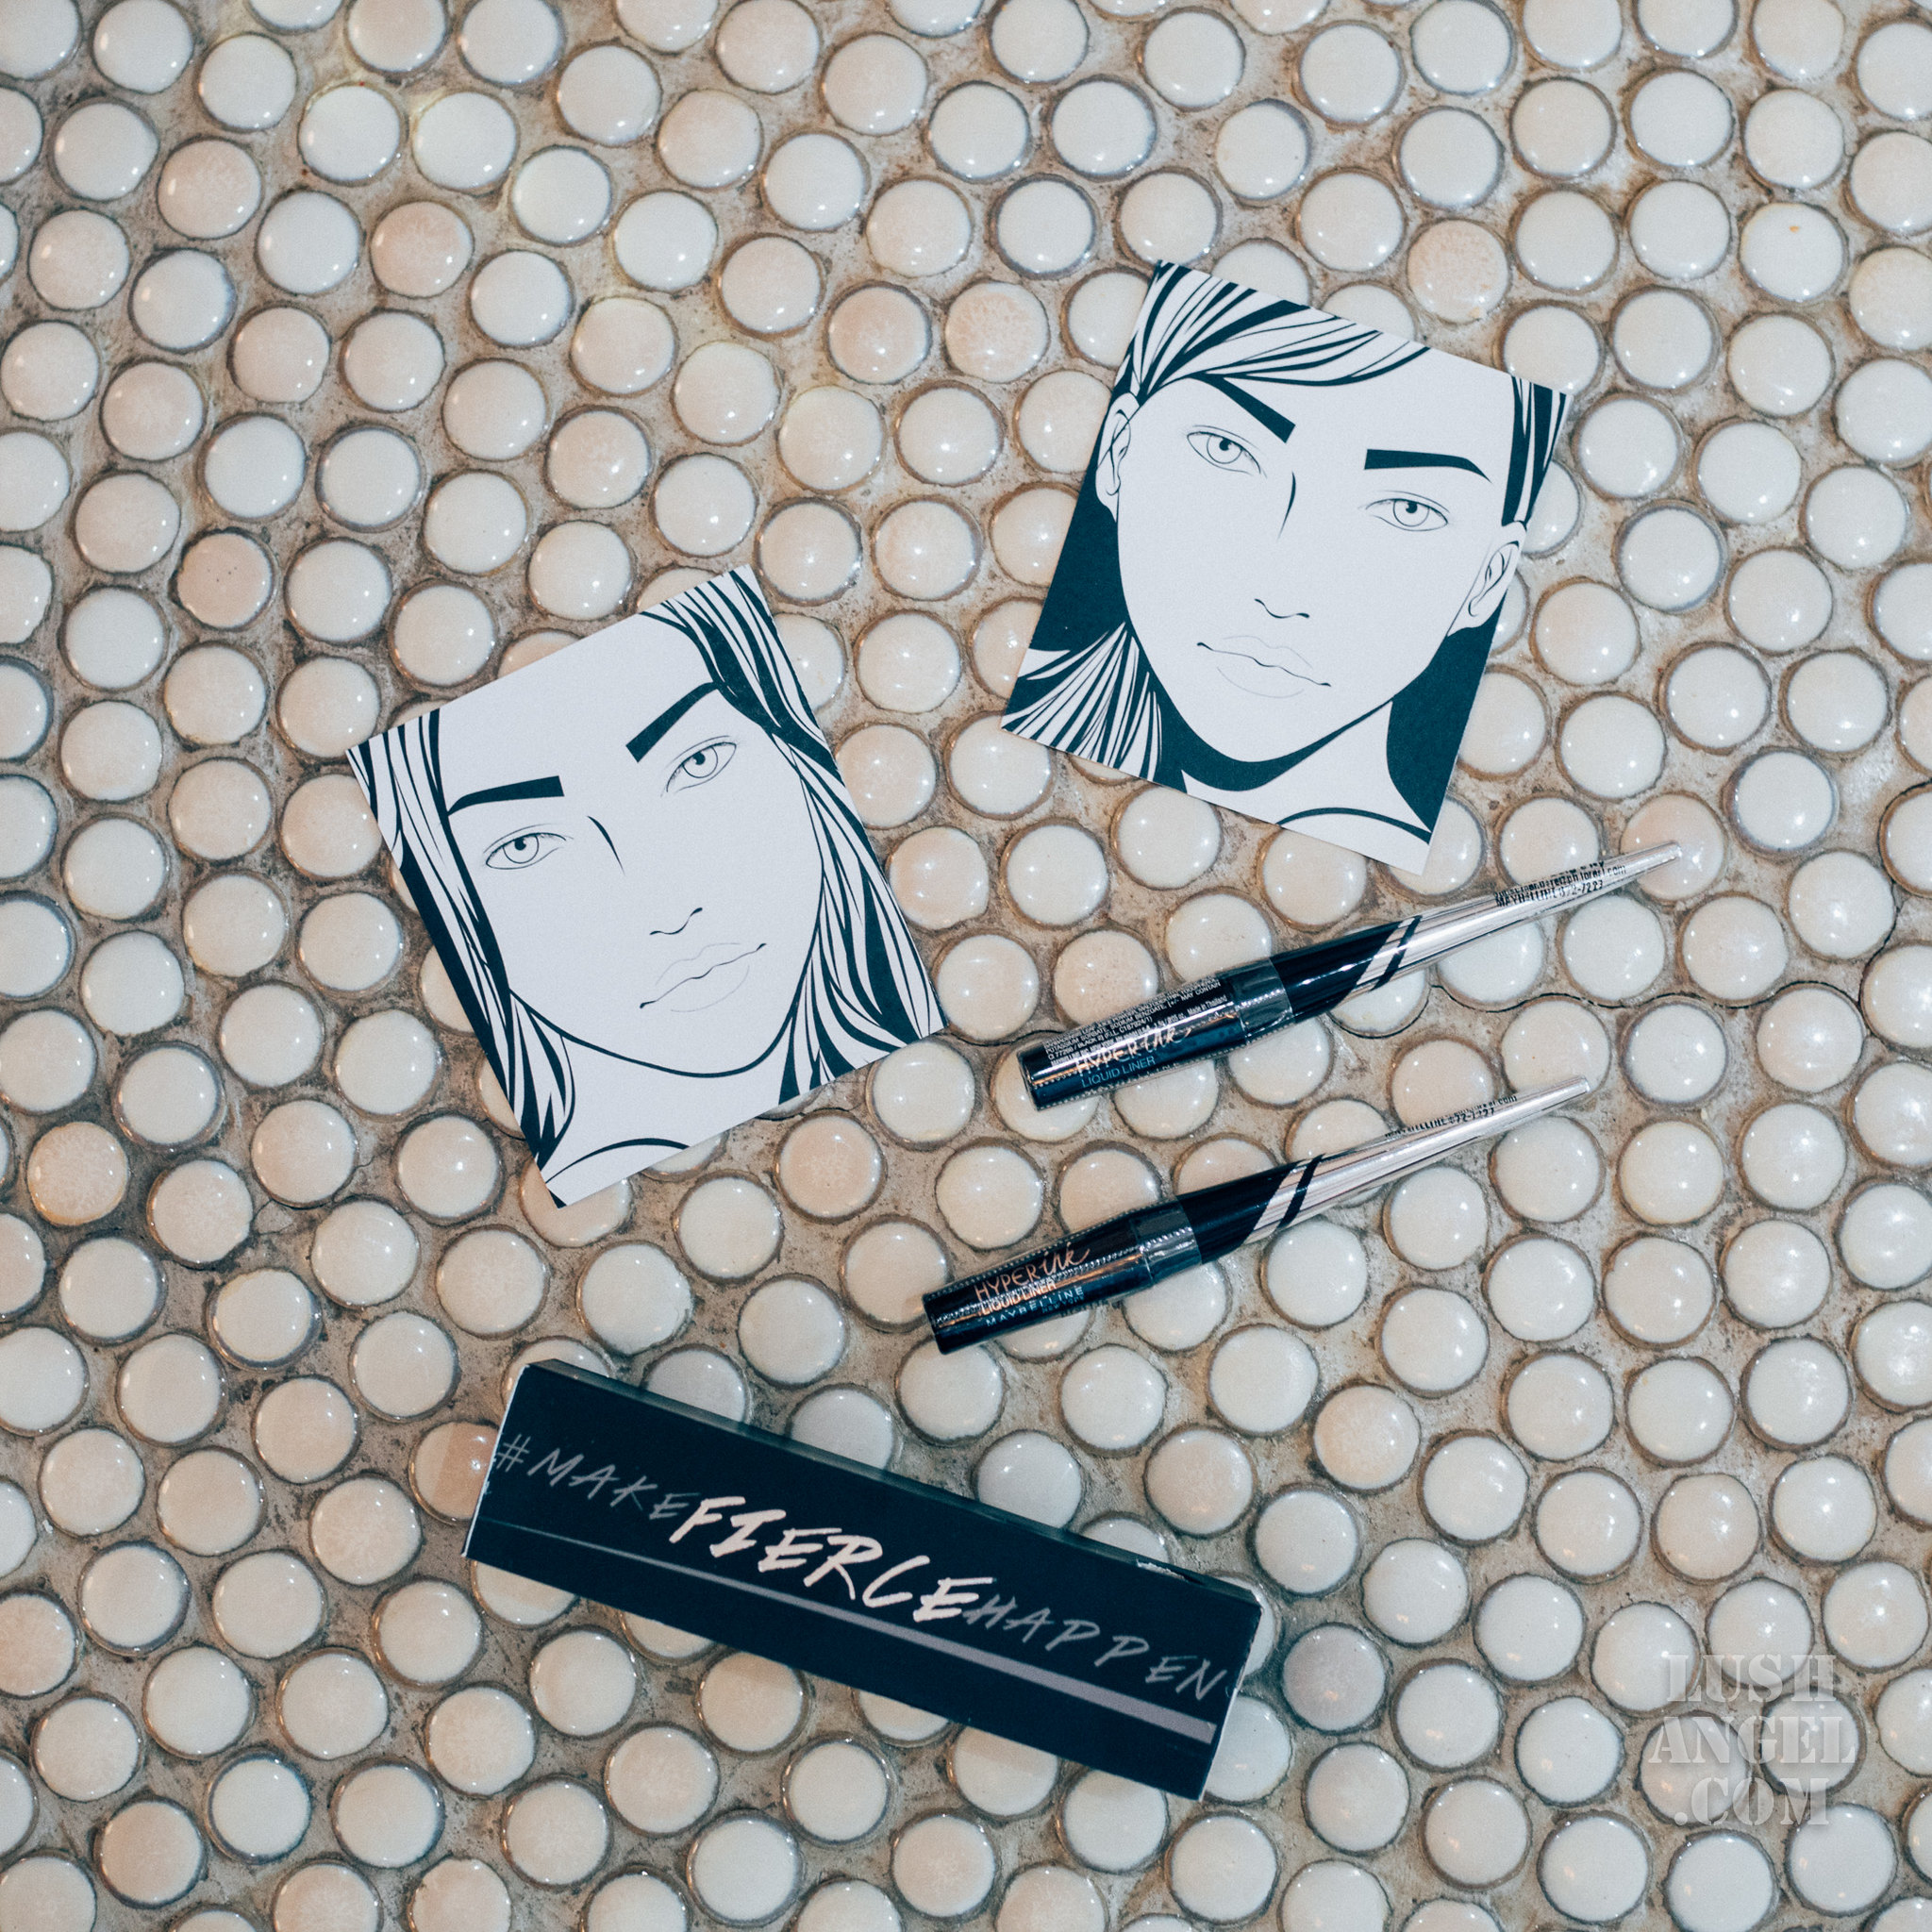 Maybelline Hyperink Liquid Liner Review